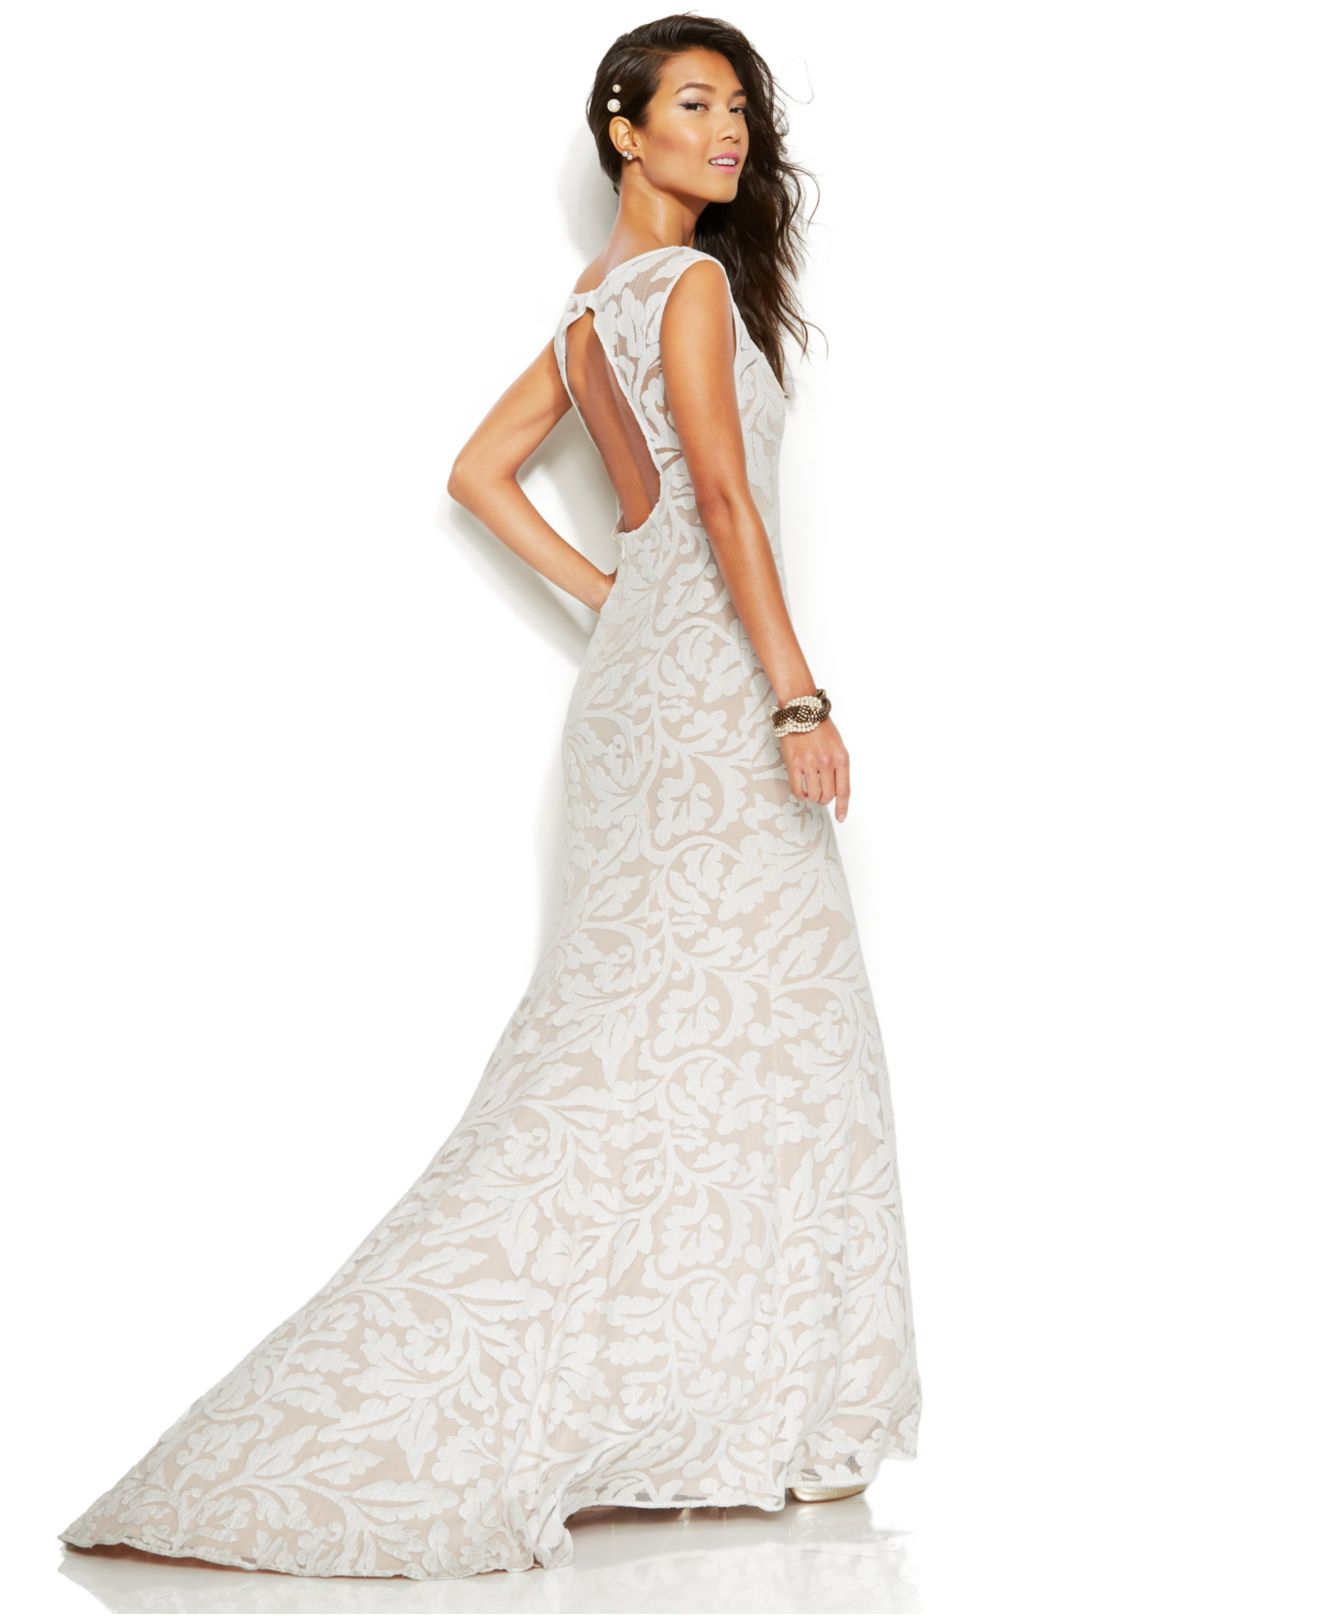 Lyst - Adrianna Papell Sleeveless Embroidered Lace Mermaid Gown in White